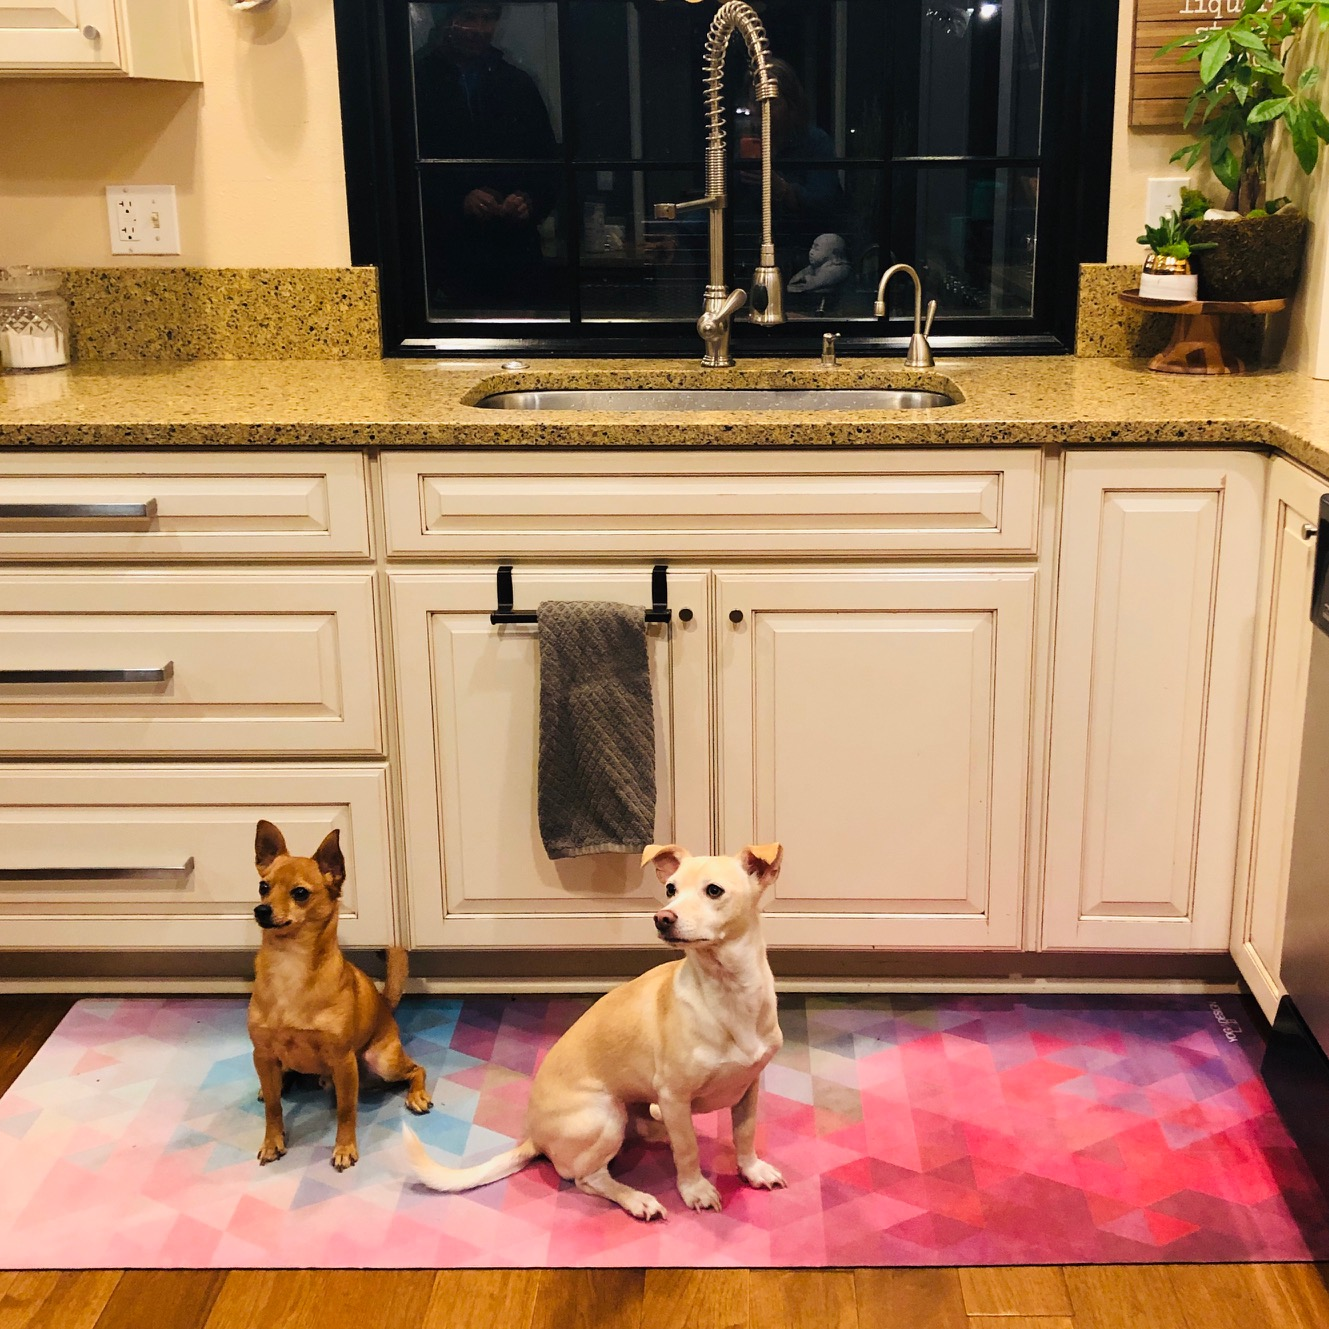 Why is there a mat in front of the sink? - and, ye s— the two dogs are the cutest!